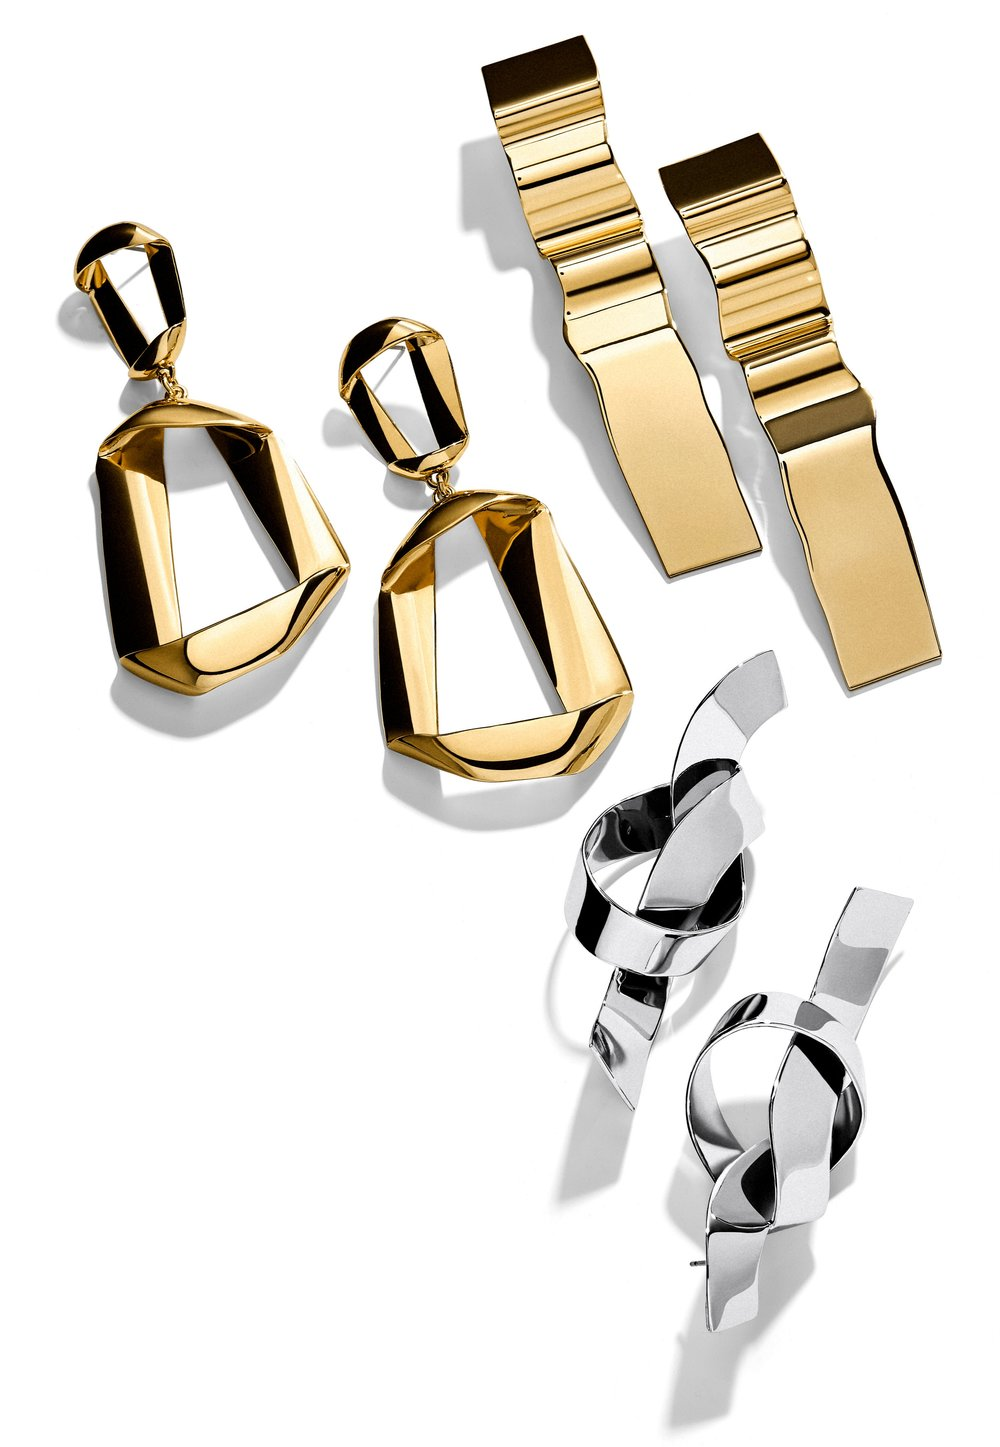 2.13_MustHave_Fluid_Metal_Earrings_38.jpg